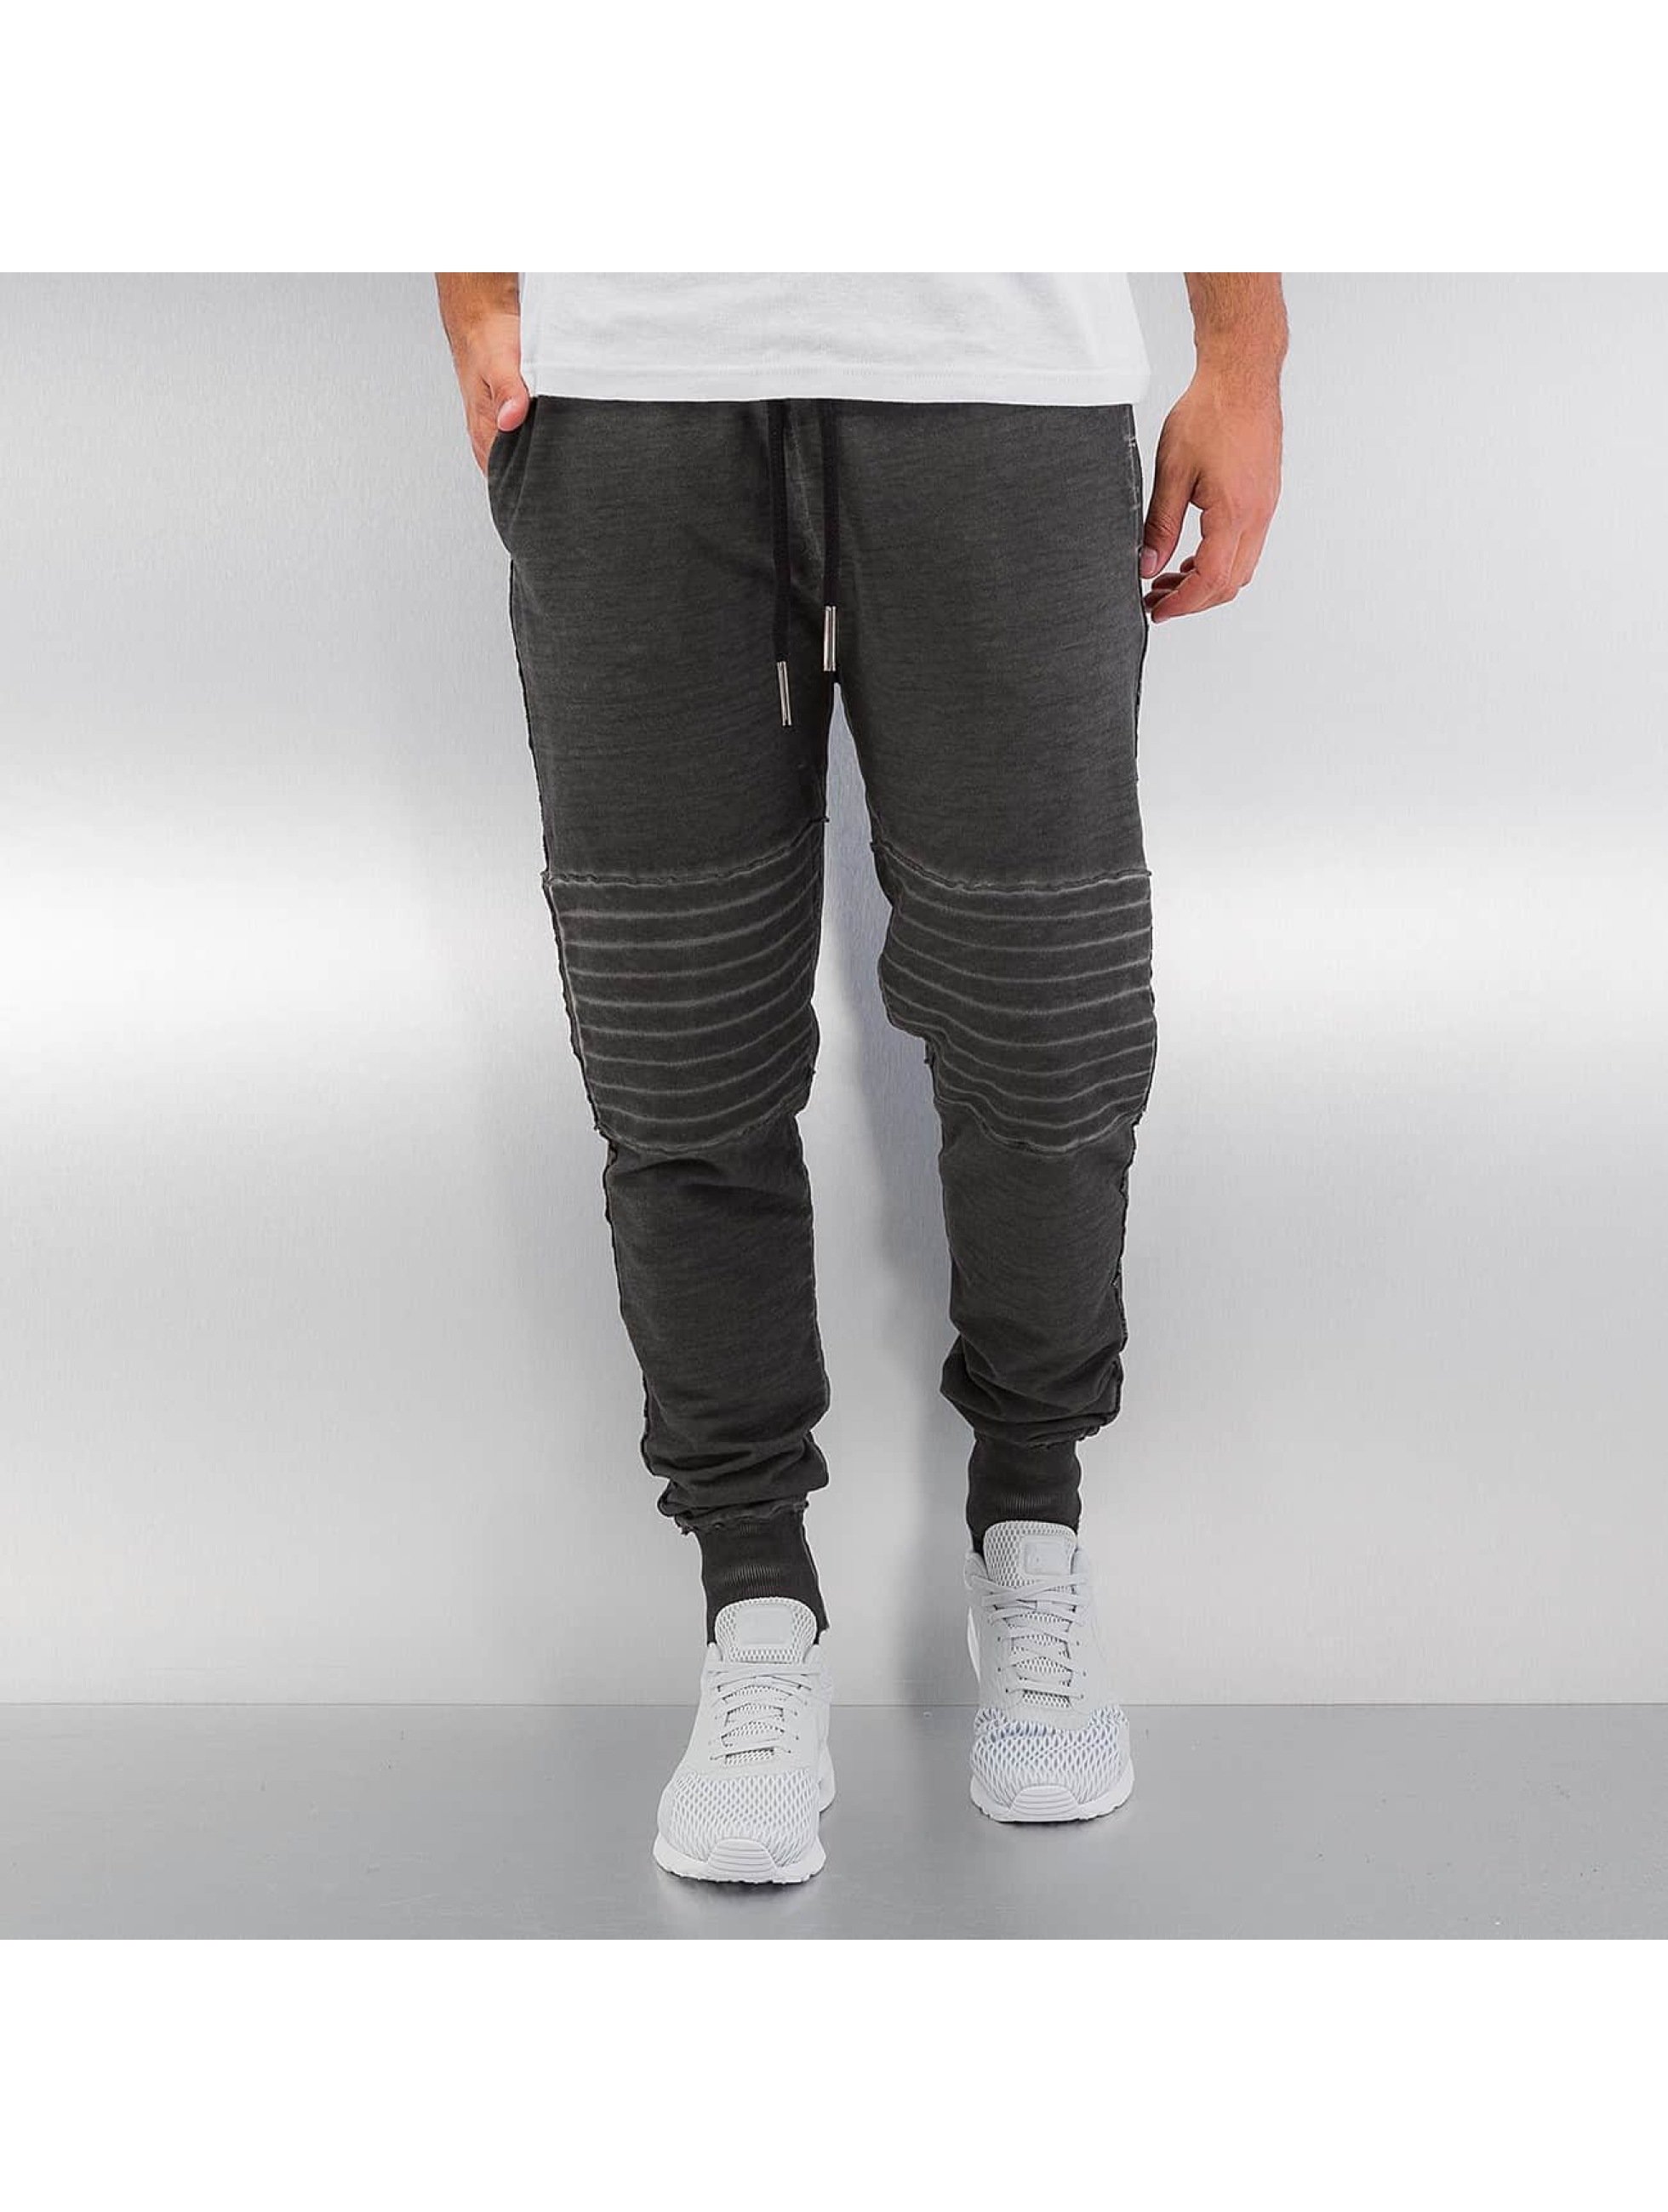 Yezz Jogginghose Washed grau